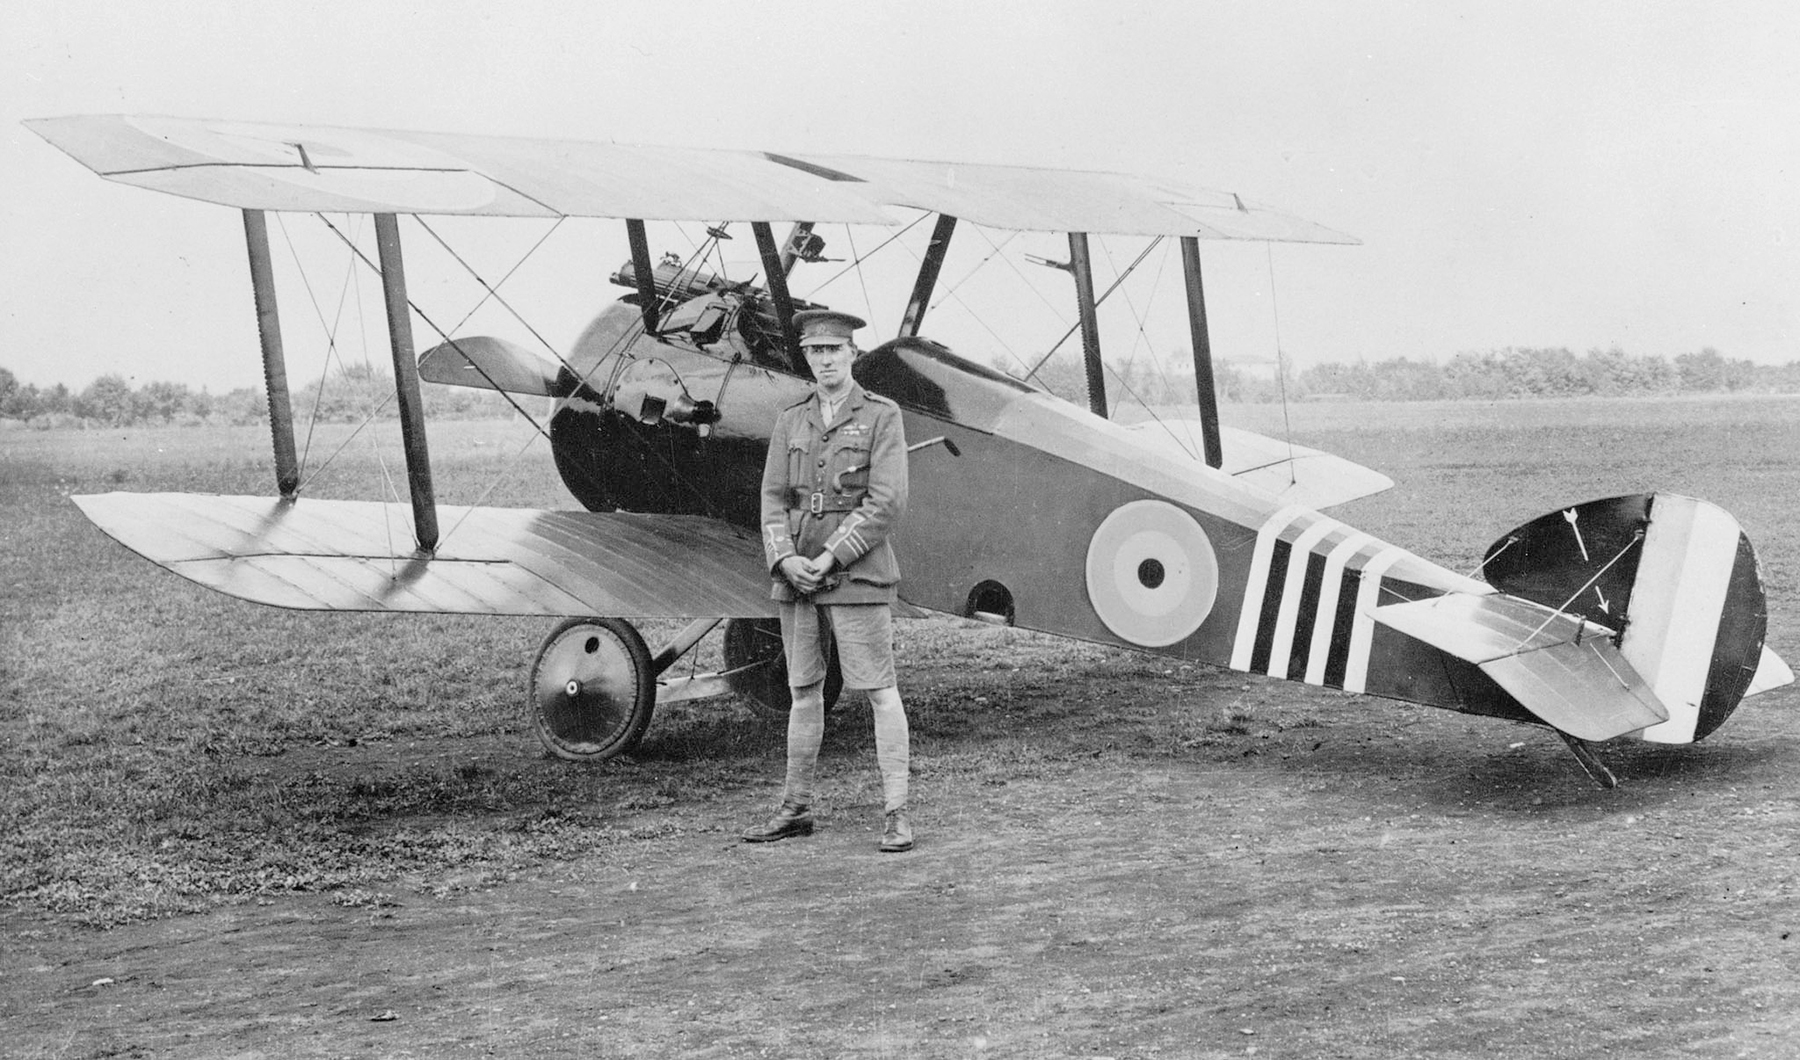 Wing Commander William Barker with his Sopwith Camel, B6313, during the First World War. According to author Wayne Ralph, this aircraft has been declared by British aviation historians to be the most successful fighting aircraft in Royal Air Force history. PHOTO: DND Archives, AH-517